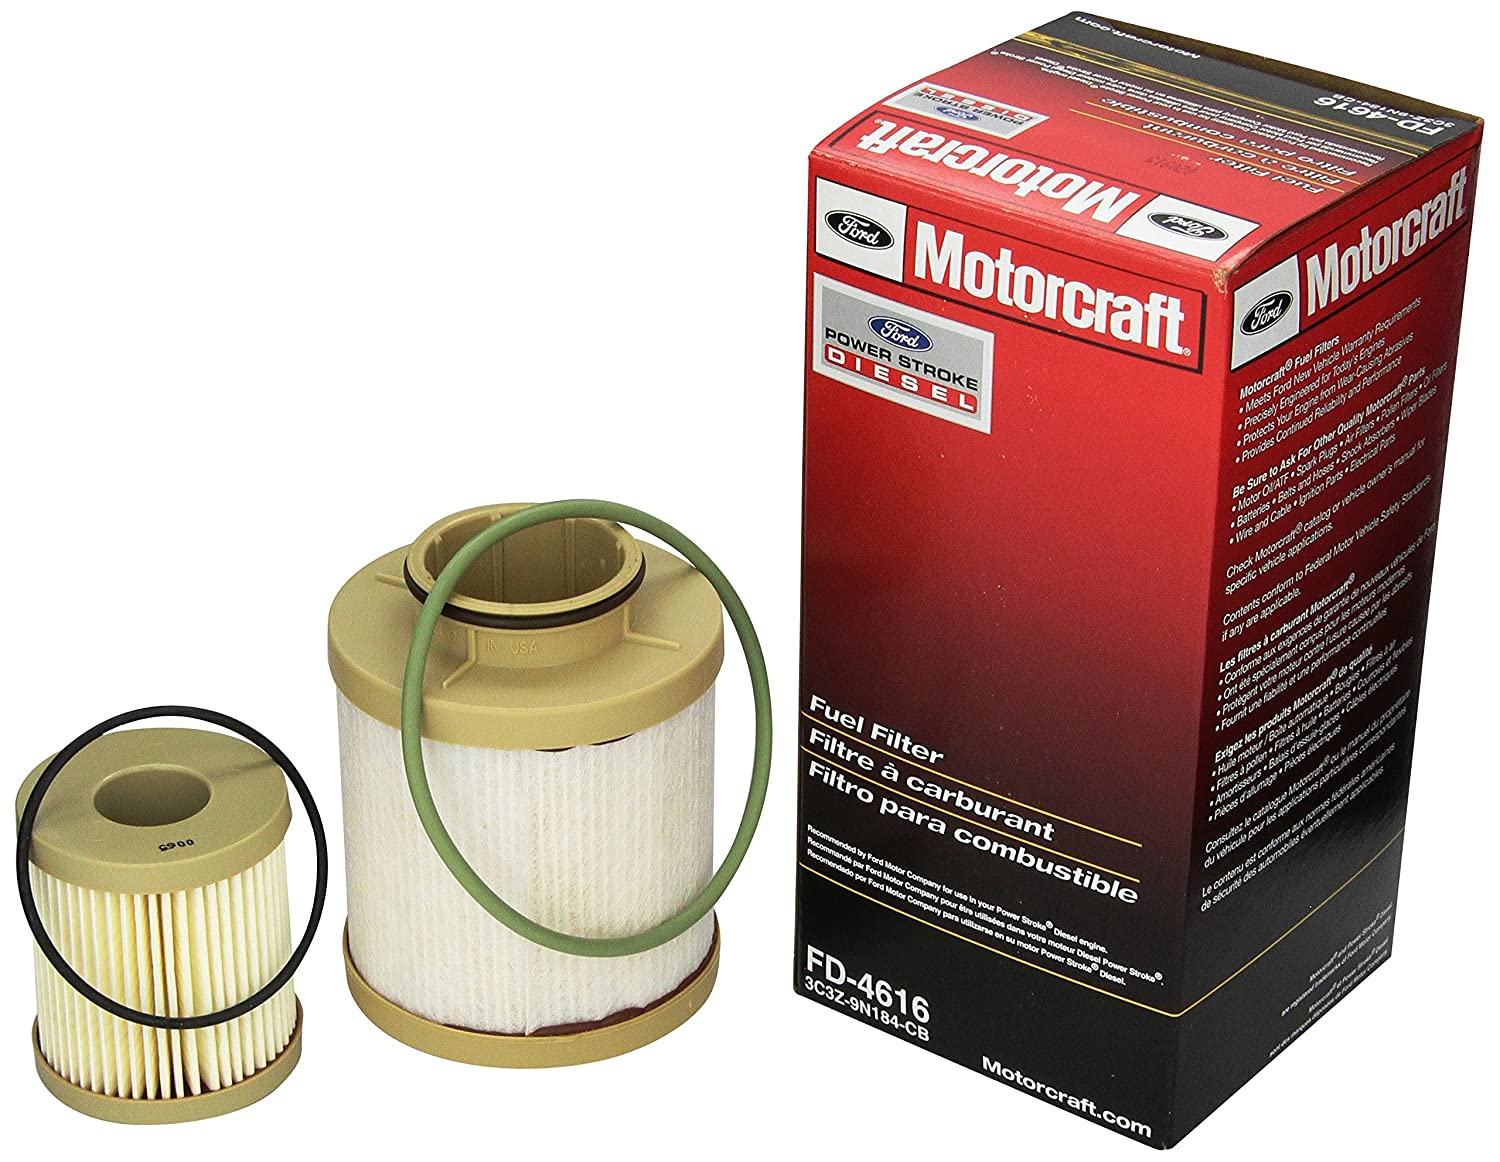 Fuel Filters Replacement Parts Automotive 2001 Ford Mustang Filter Diagram Motorcraft Fd 4616